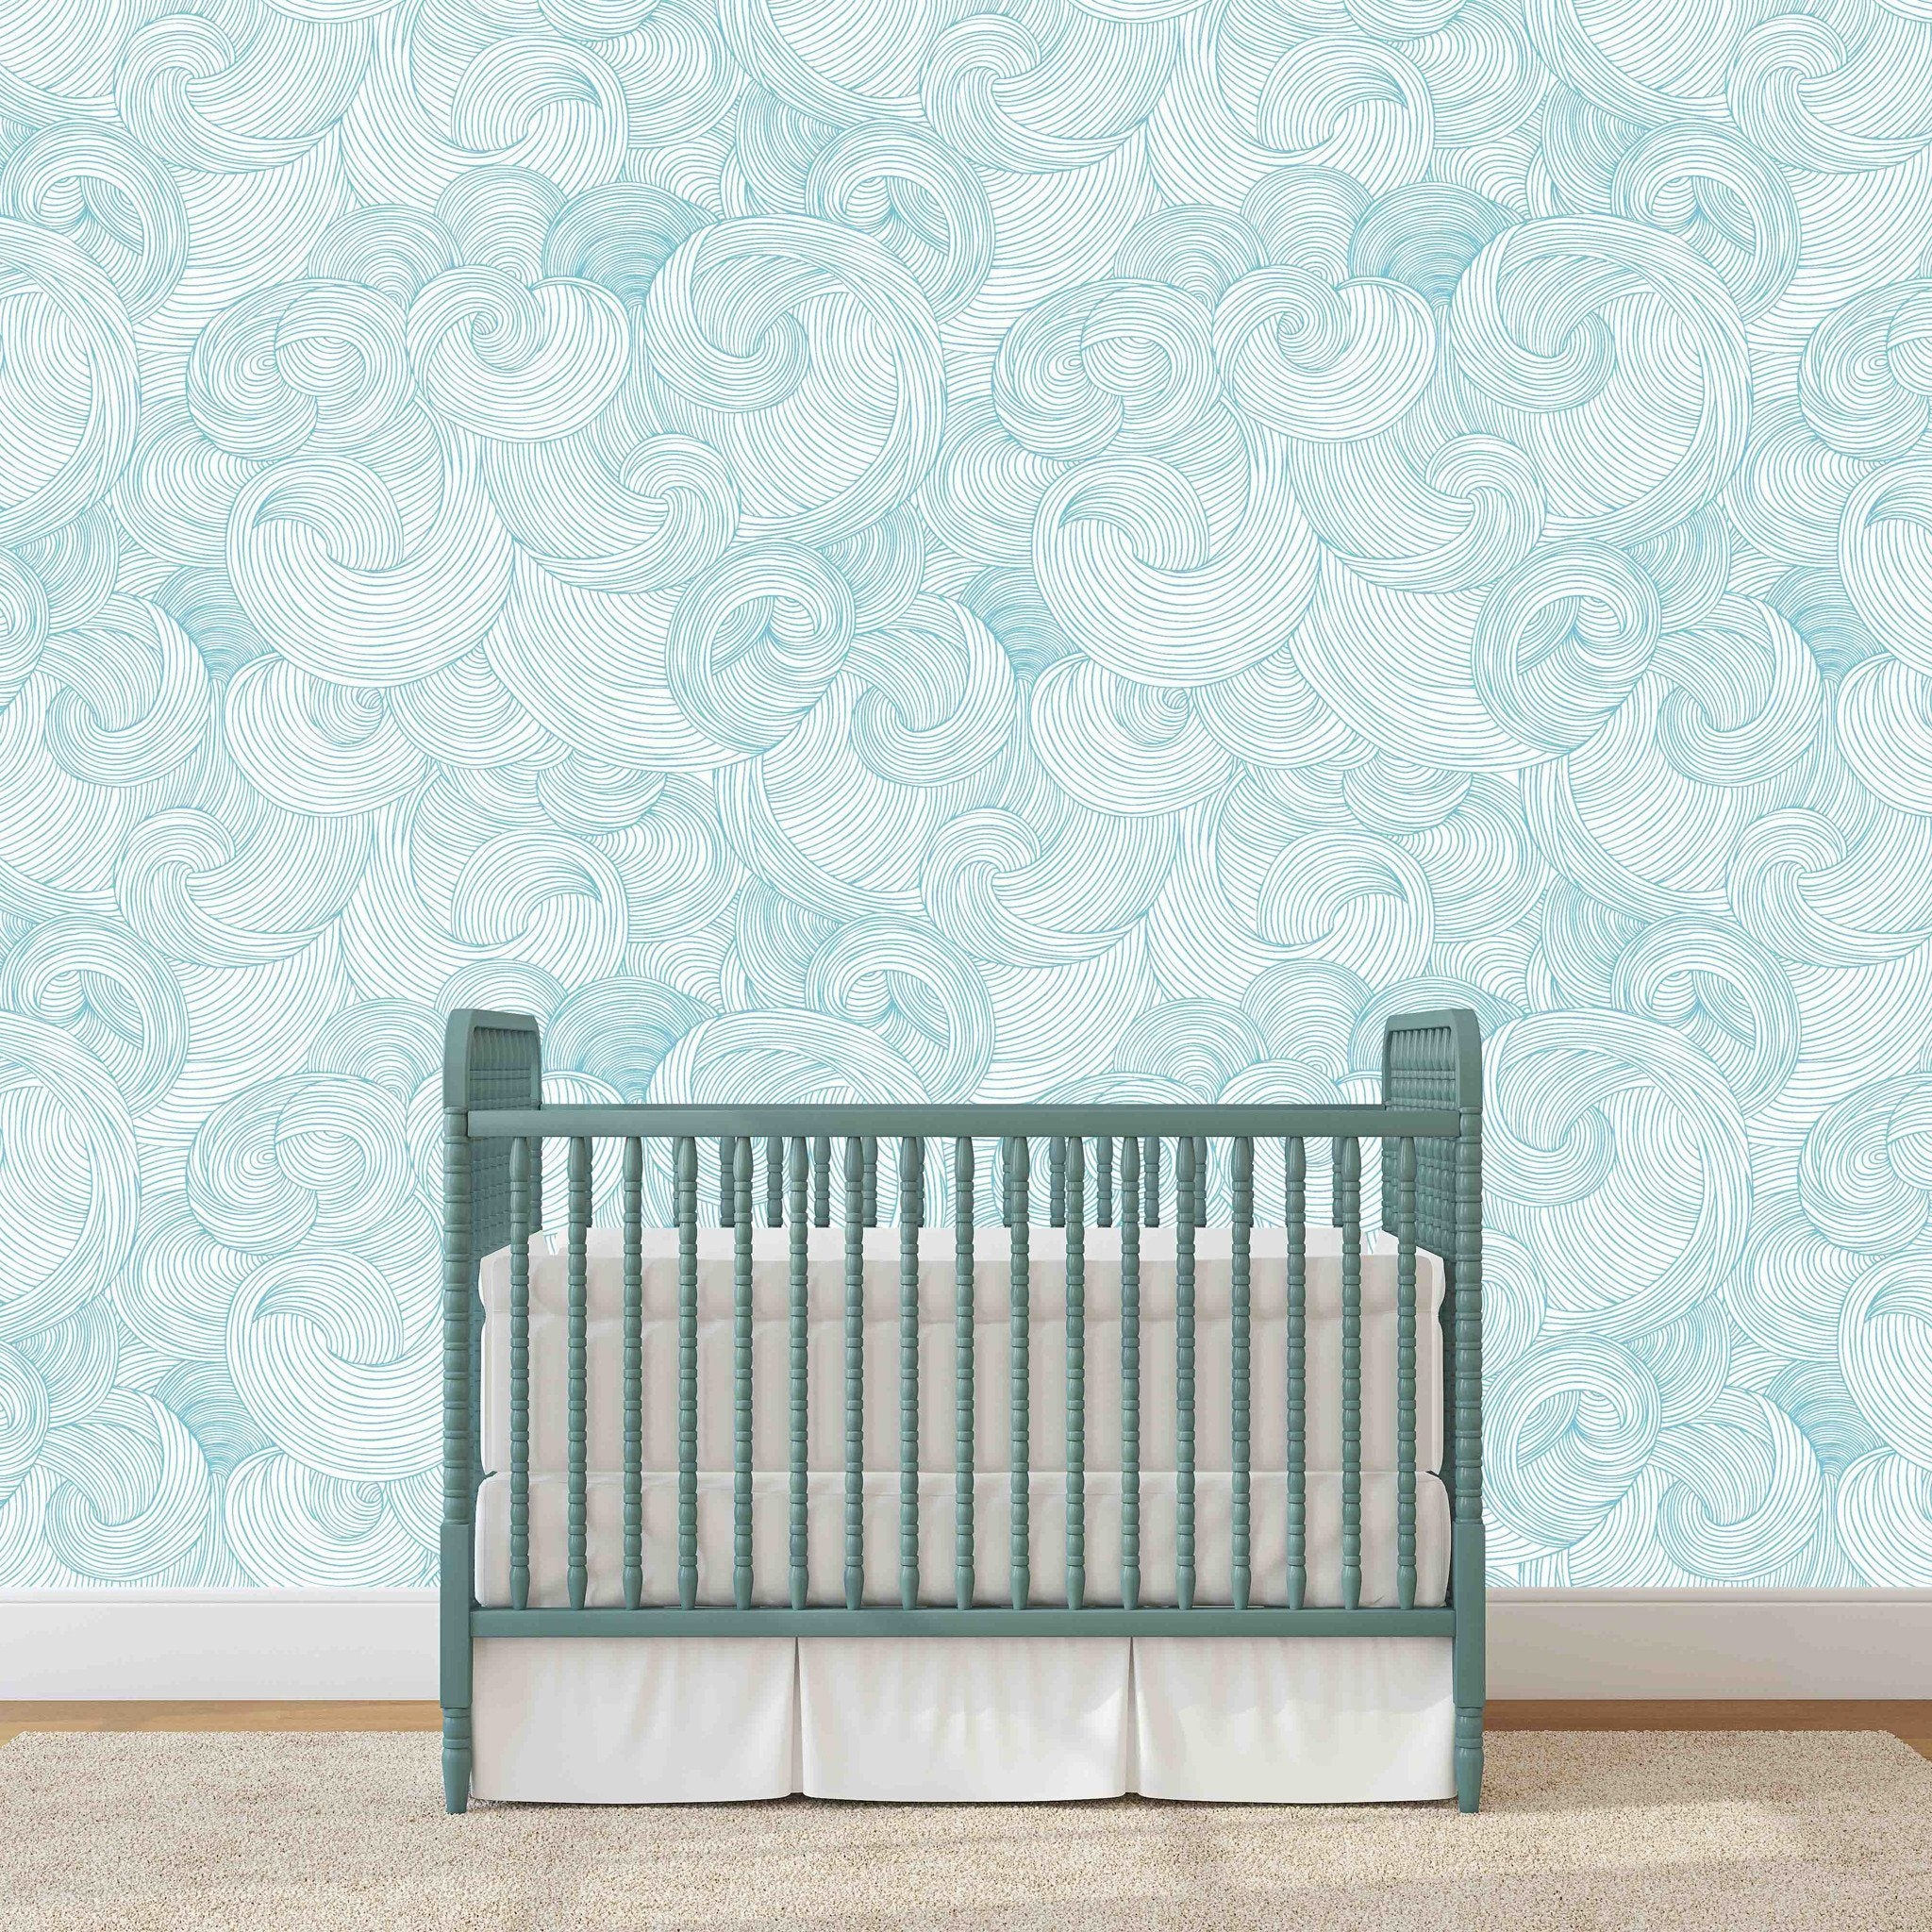 Piper Wallpaper - Project Nursery